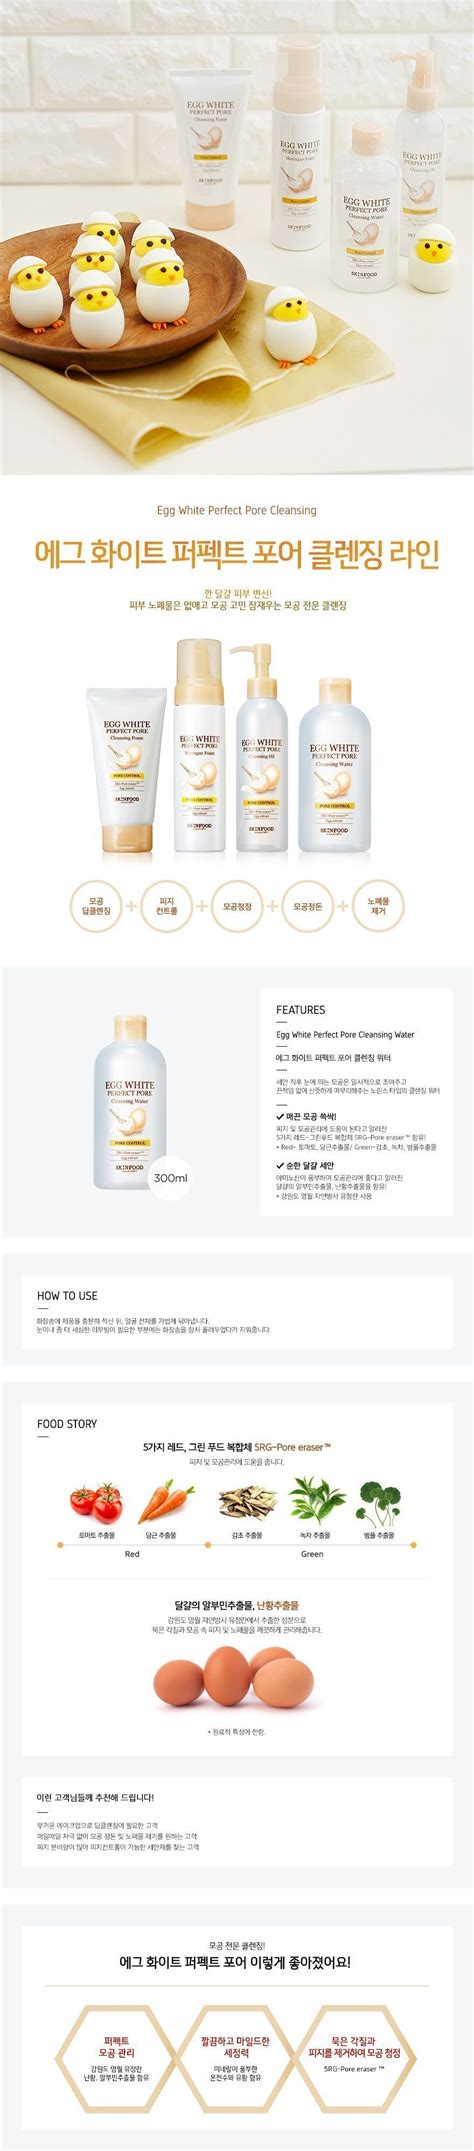 Skinfood Egg White Perfect Pore Cleansing Water – seoul